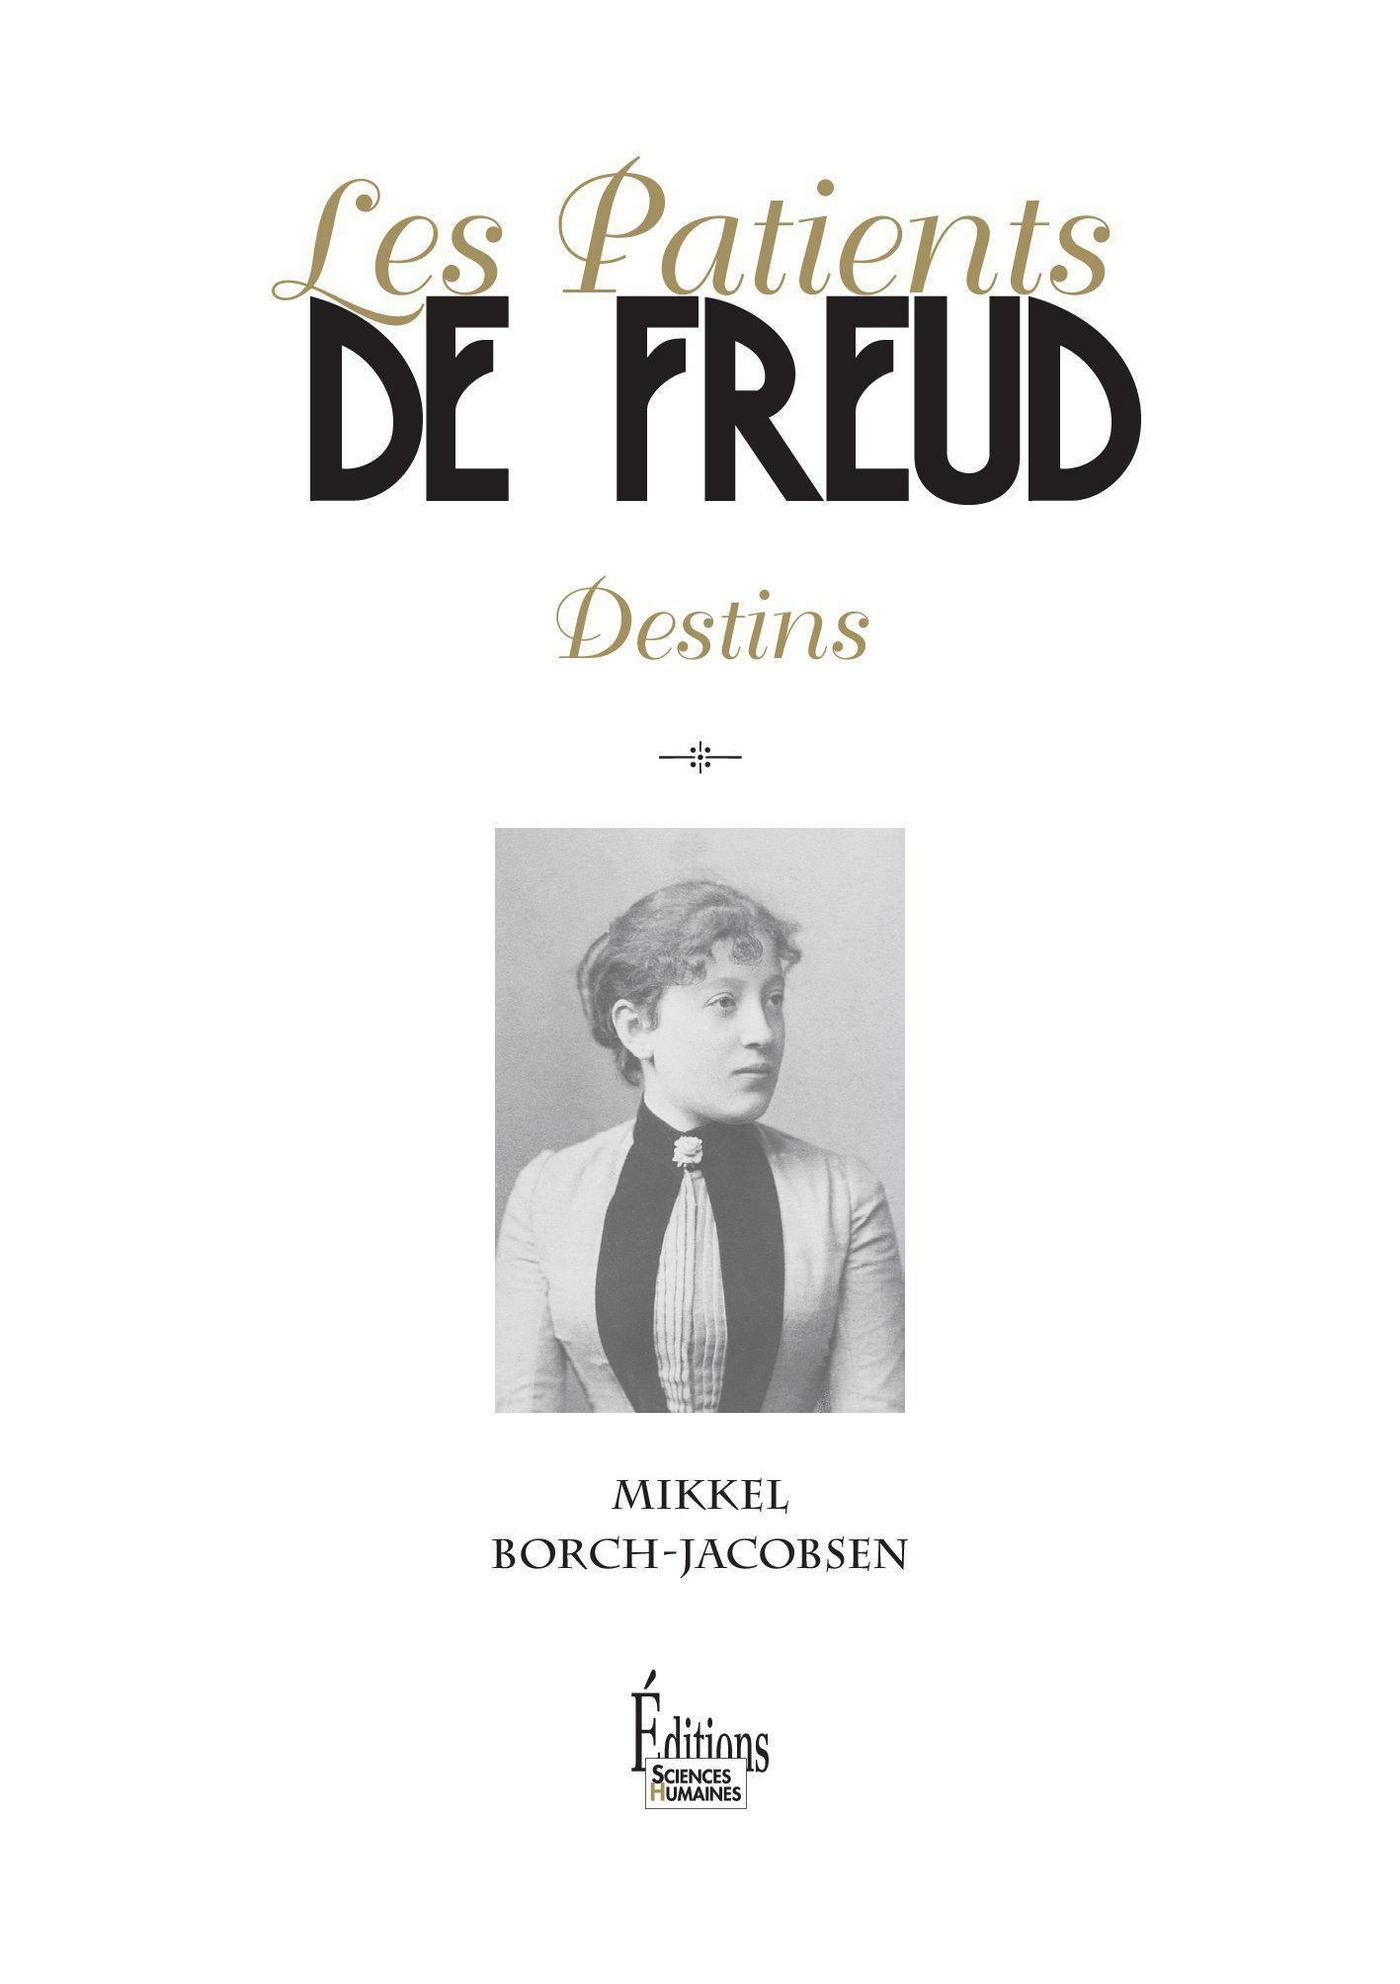 Les Patients de Freud. Destins